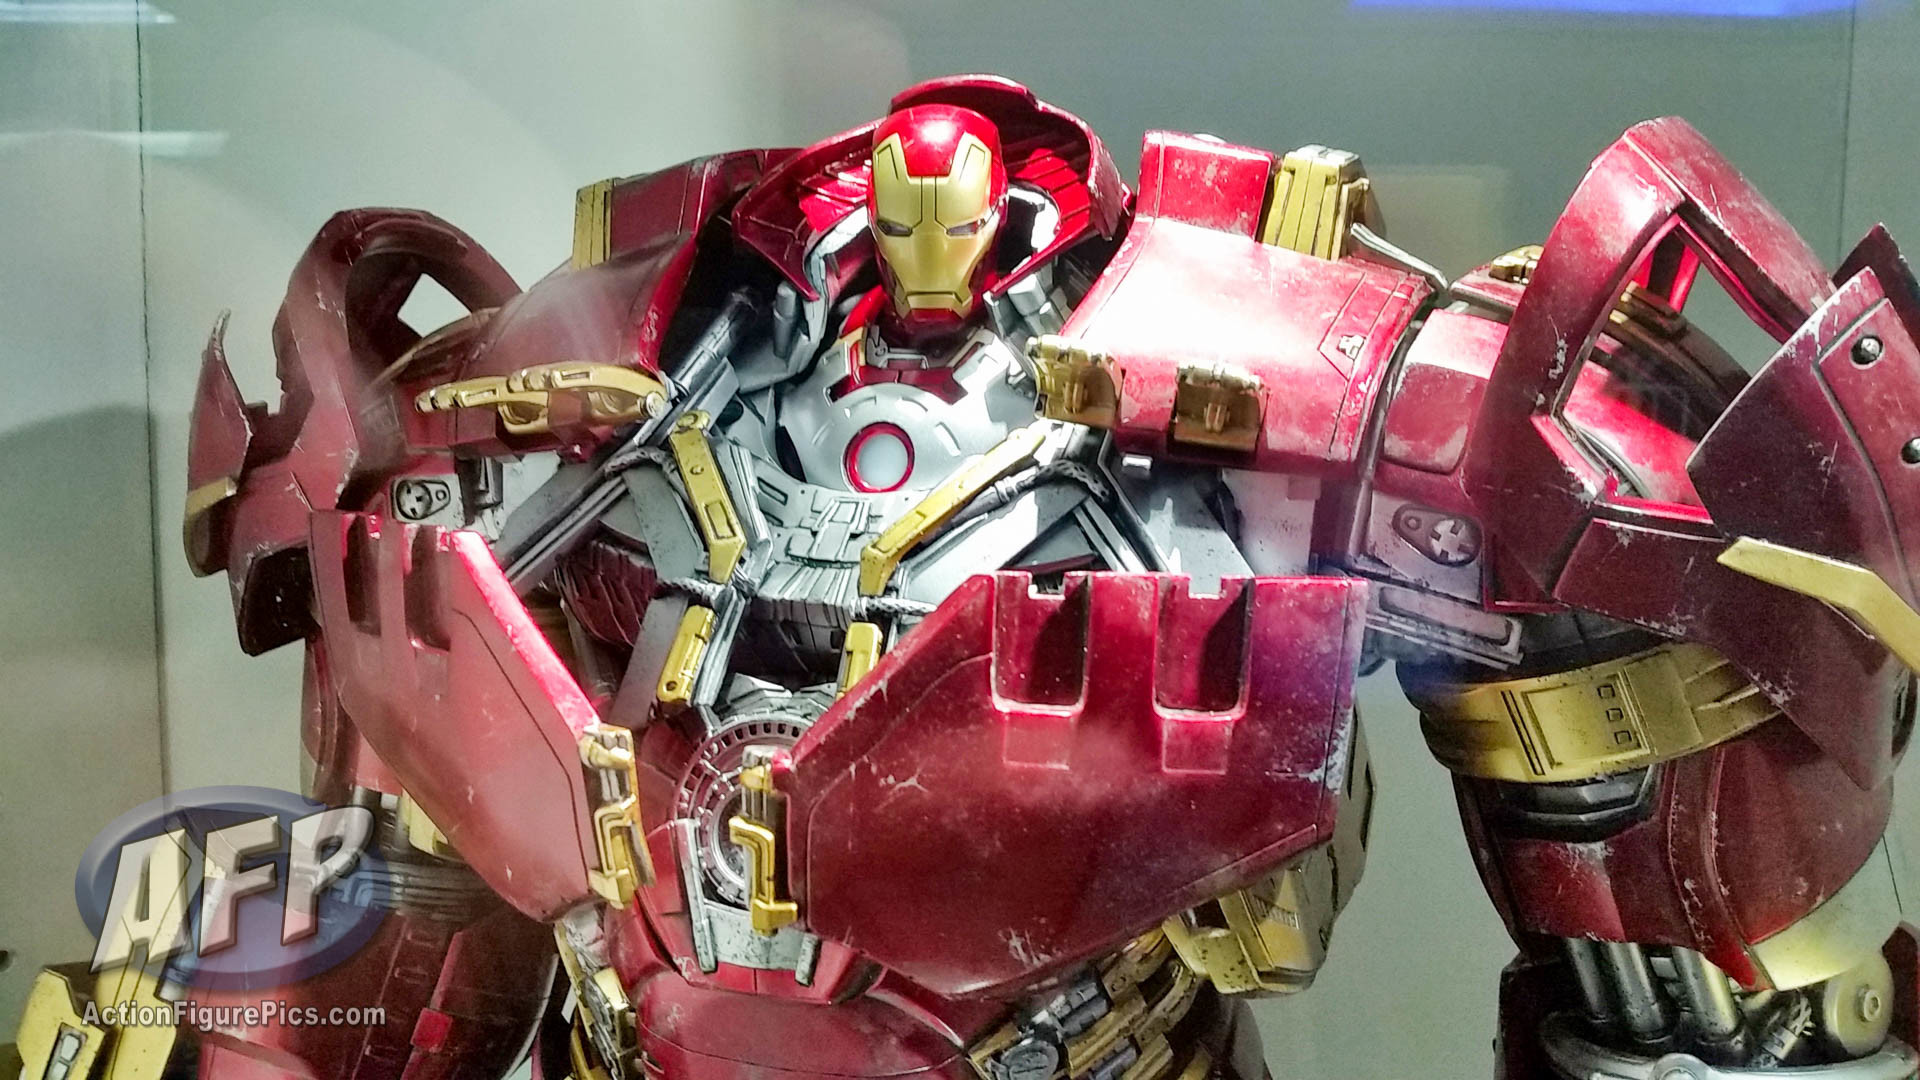 Res: 1920x1080, Hot Toys Secret Base (Hong Kong) Avengers Age of Ultron Hulkbuster Iron Man  and